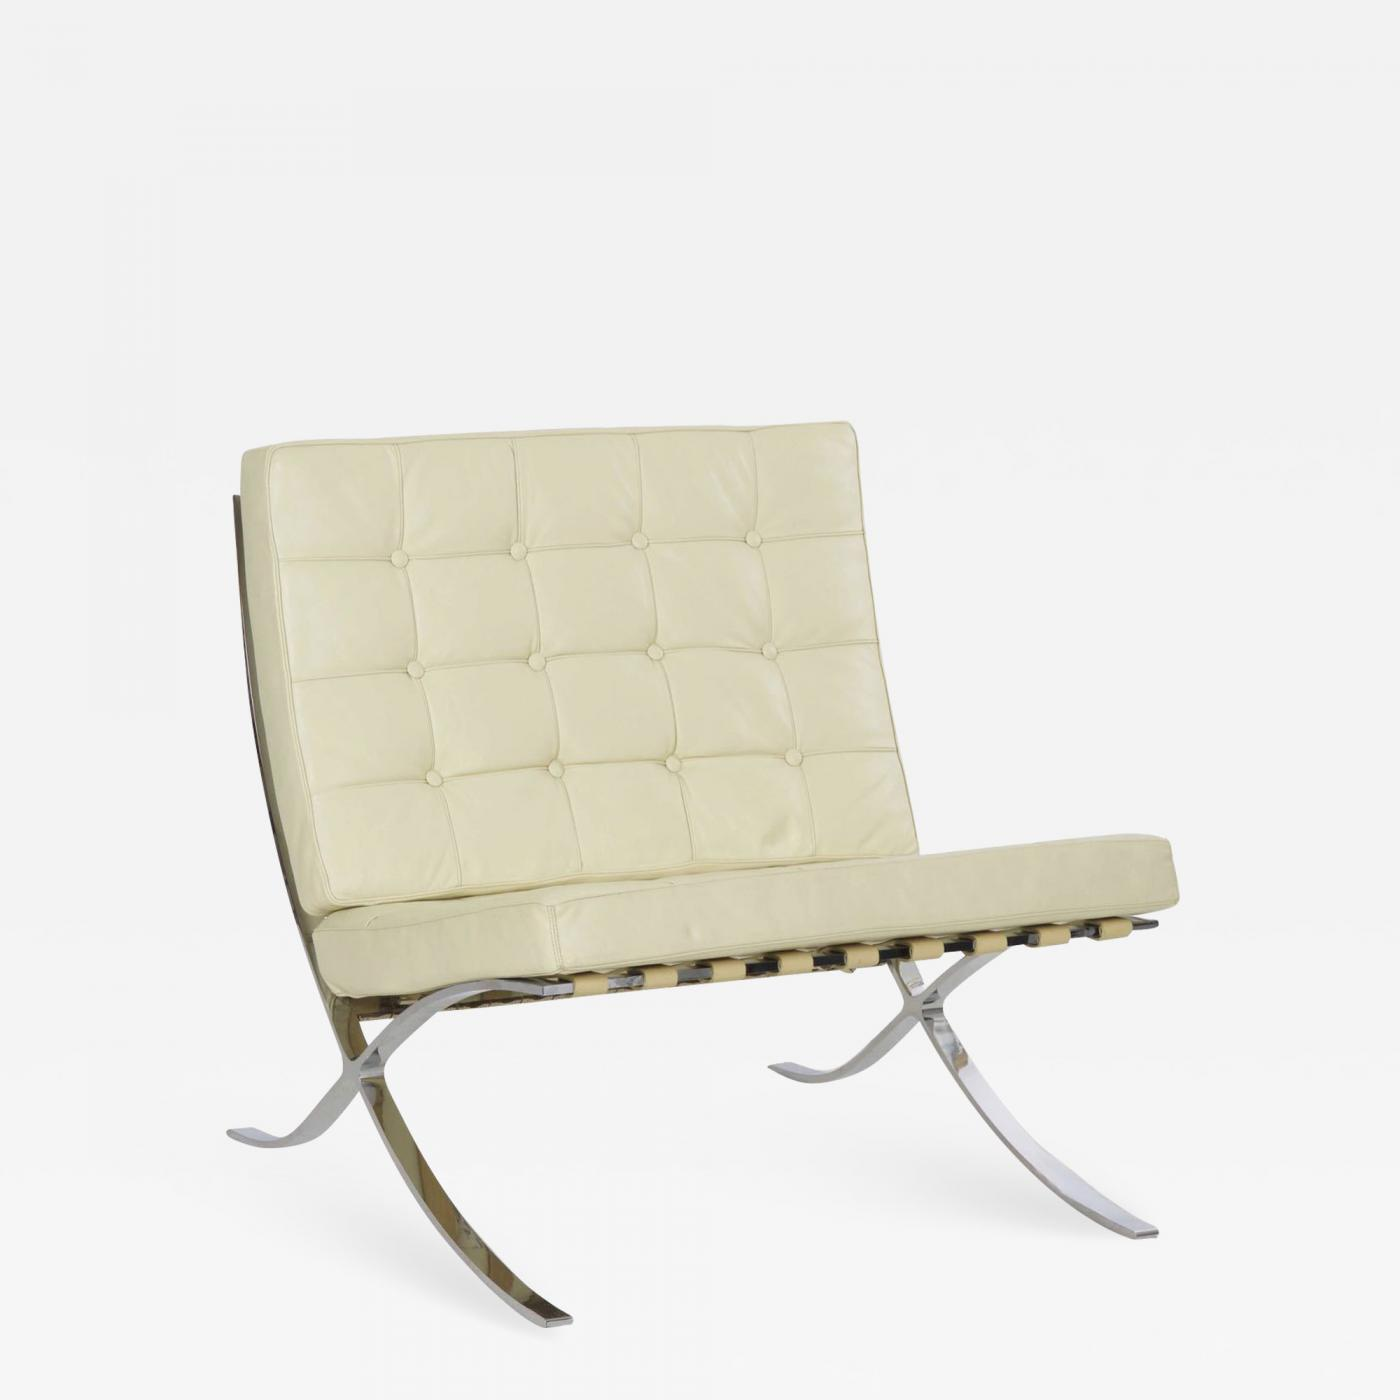 mies van der rohe barcelona chair cushions for outdoor chairs bunnings ludwig white leather after by alivar